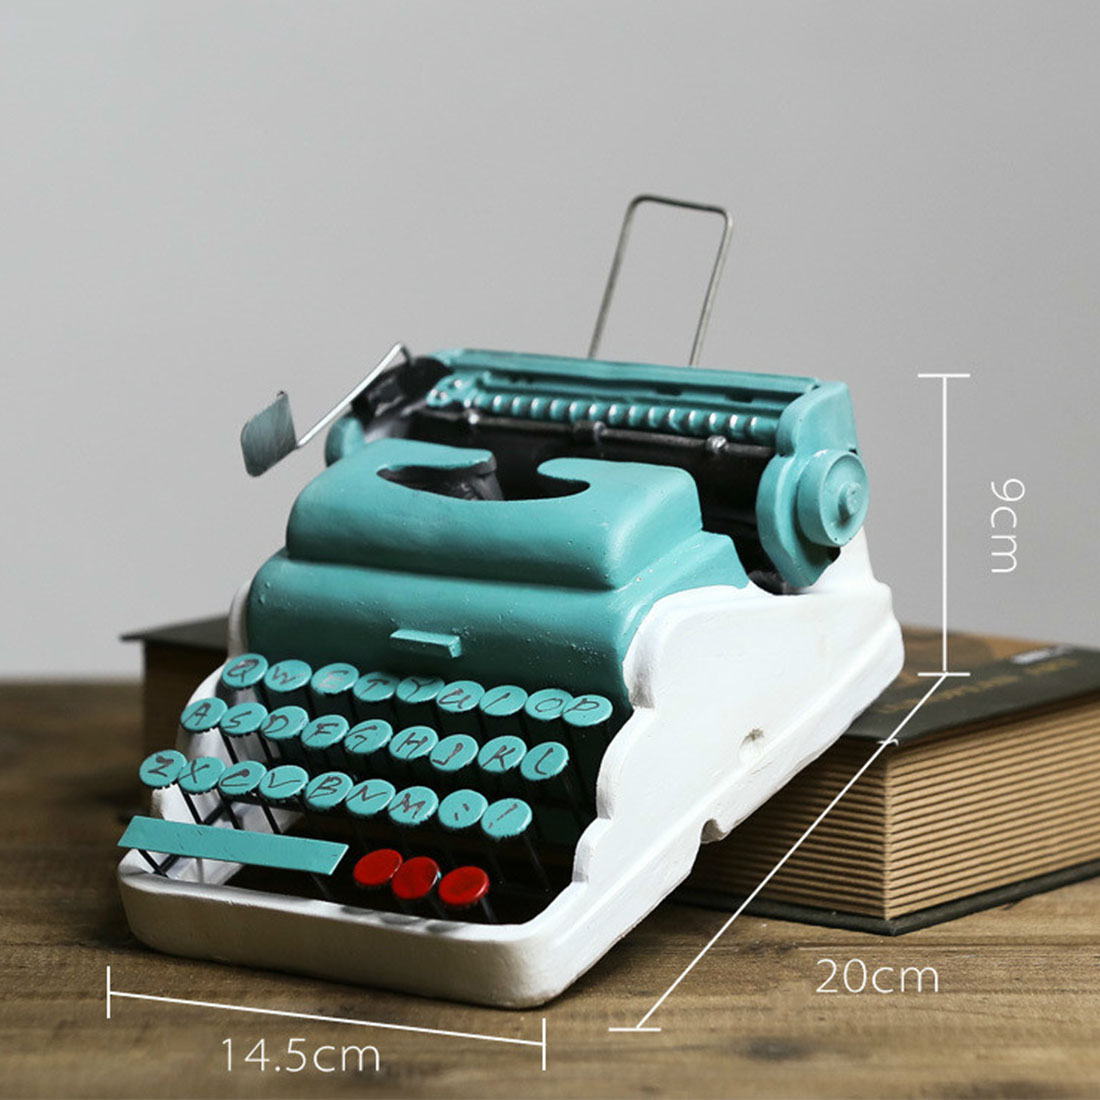 Retro Metal Typewriter Model Vintage Handicrafts Antique Typing Machine Home Bar Decoration Crafts Creative Gift - D Type Blue